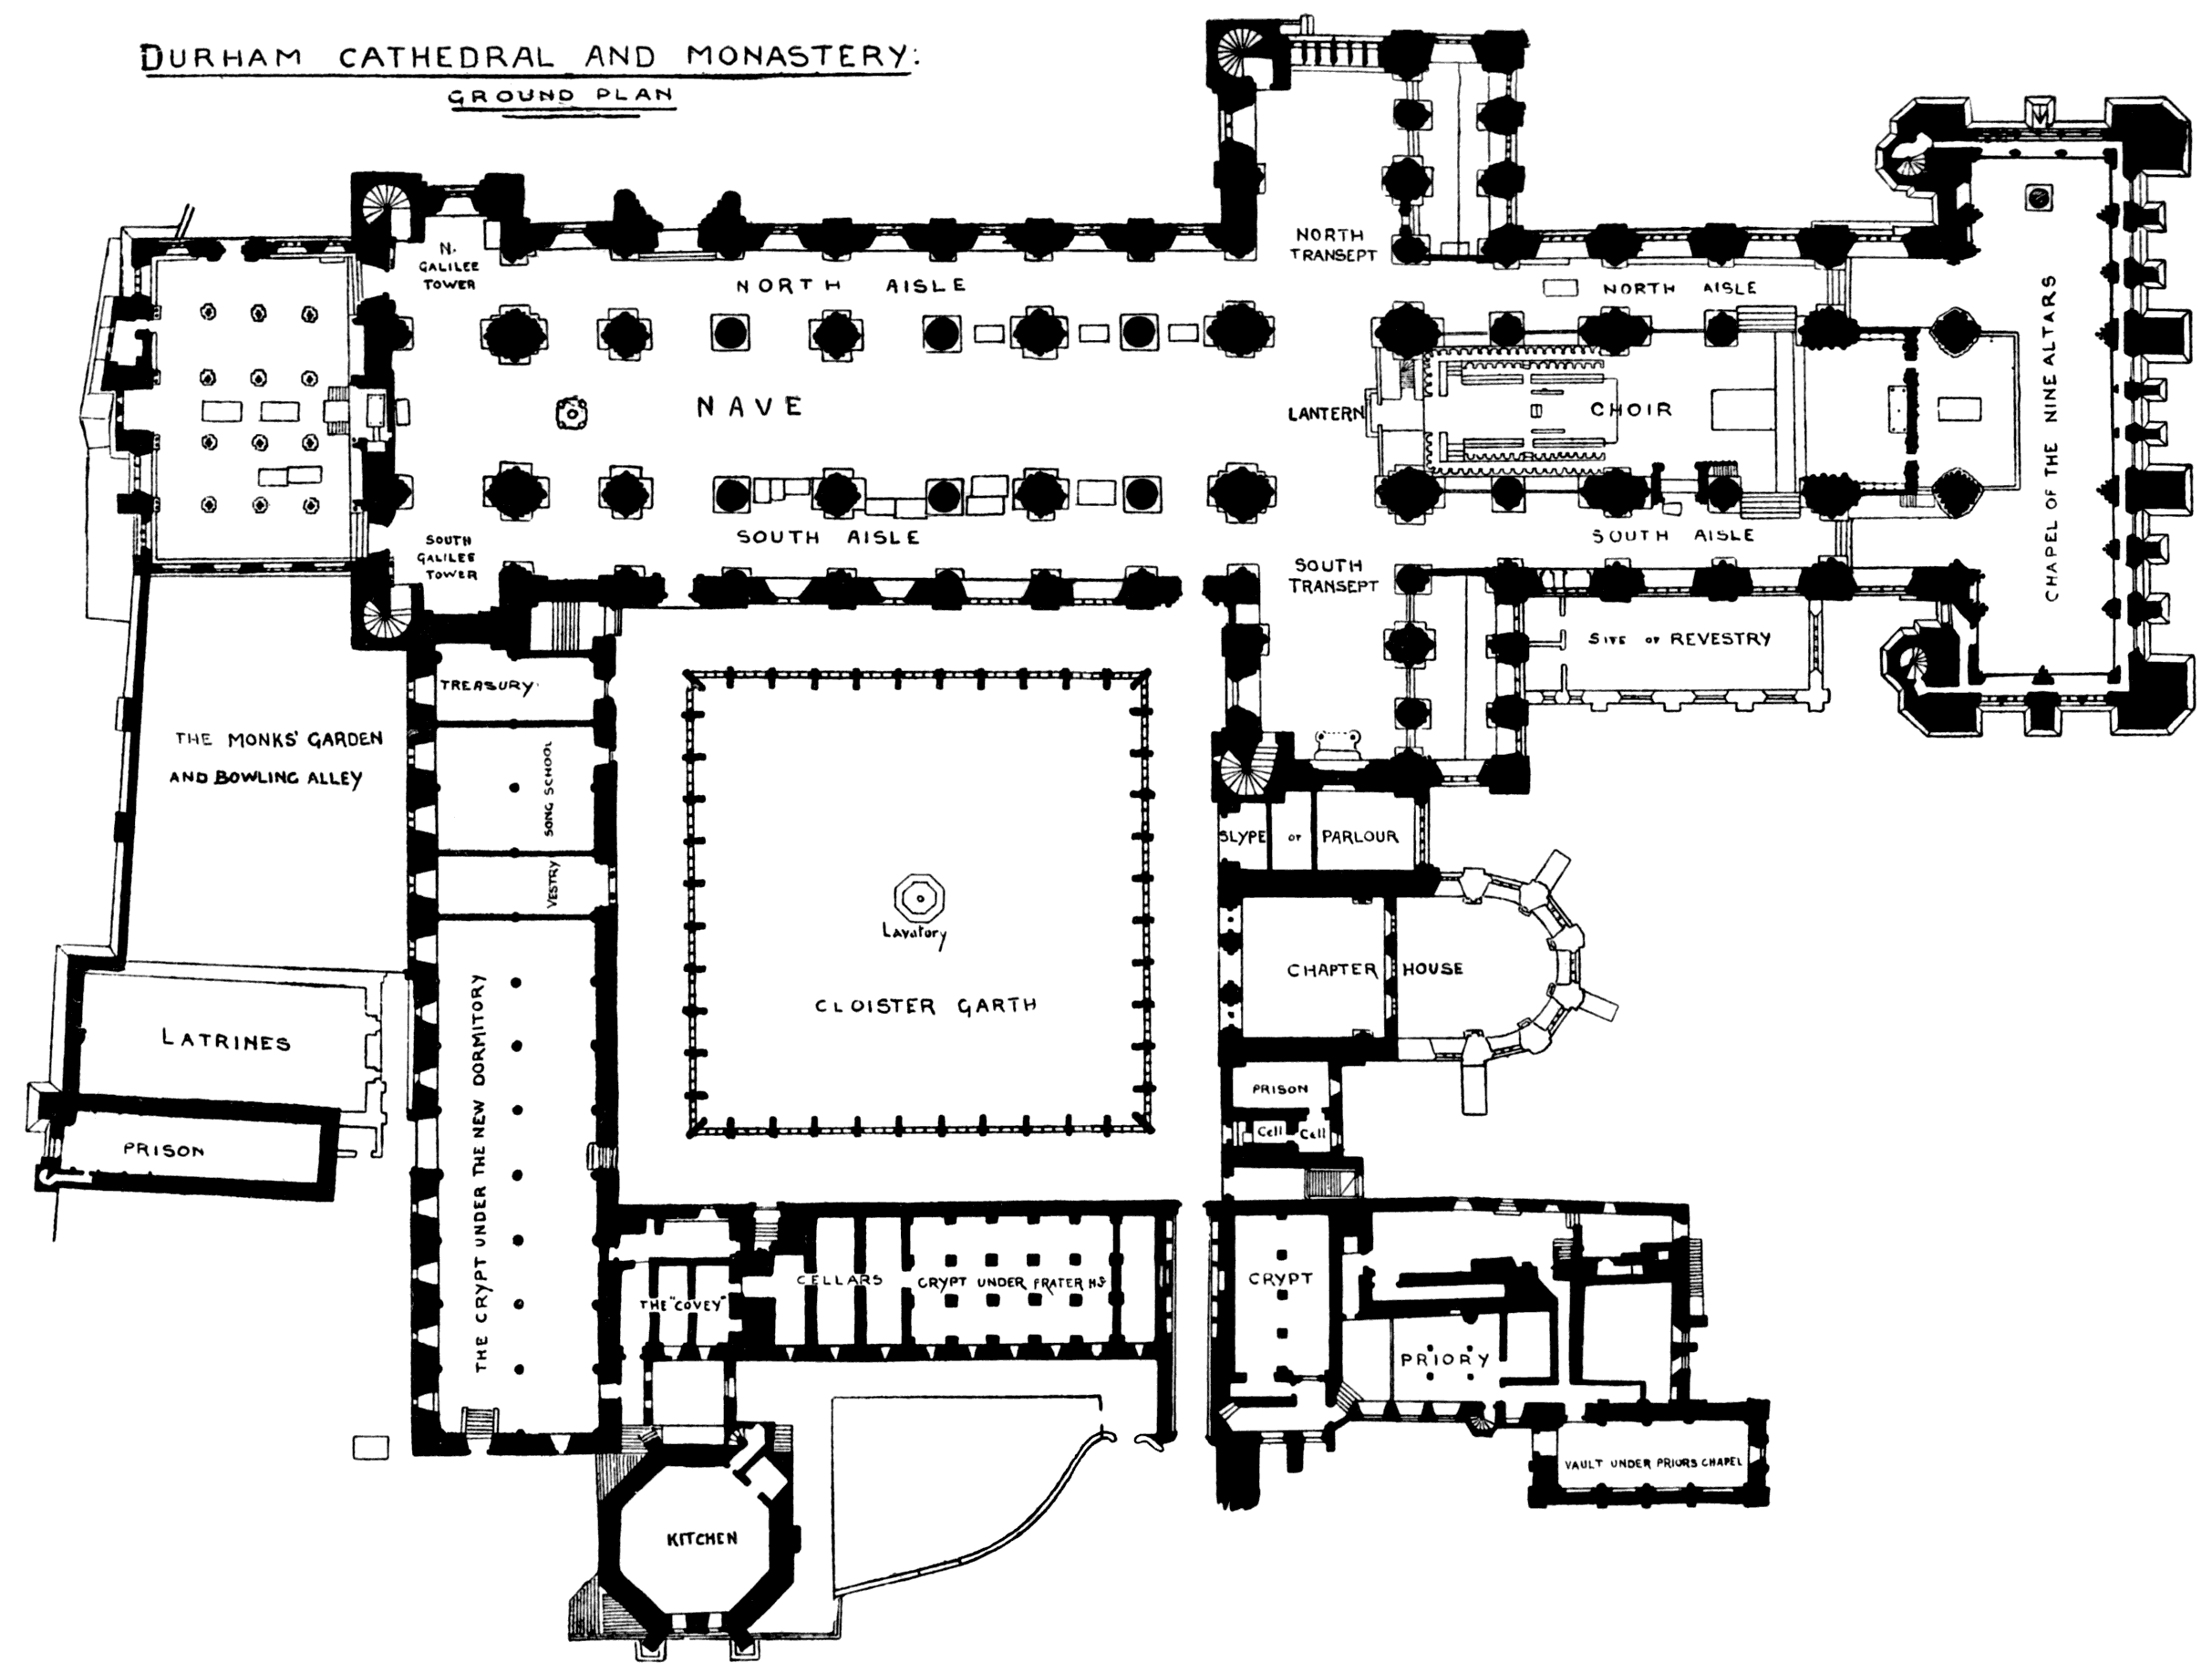 Gothic Cathedral Floor Plan The Image